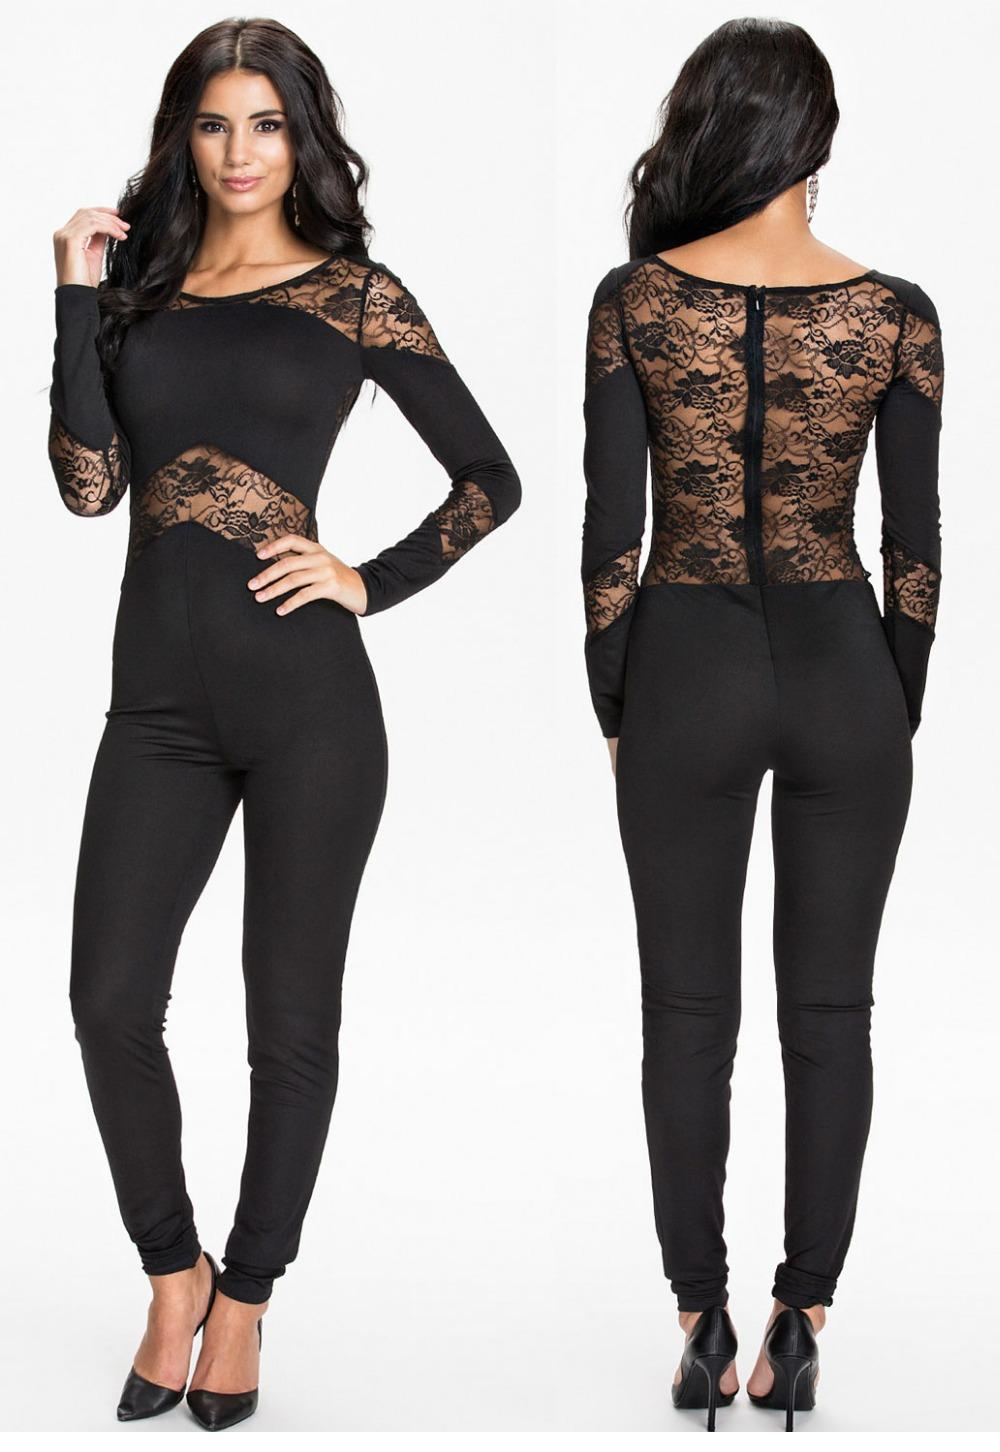 Black Lace Insert Hollow-out Fashion Long sleeve jumpsuits and rompers winter club bodysuits for women overalls female LC6788(China (Mainland))